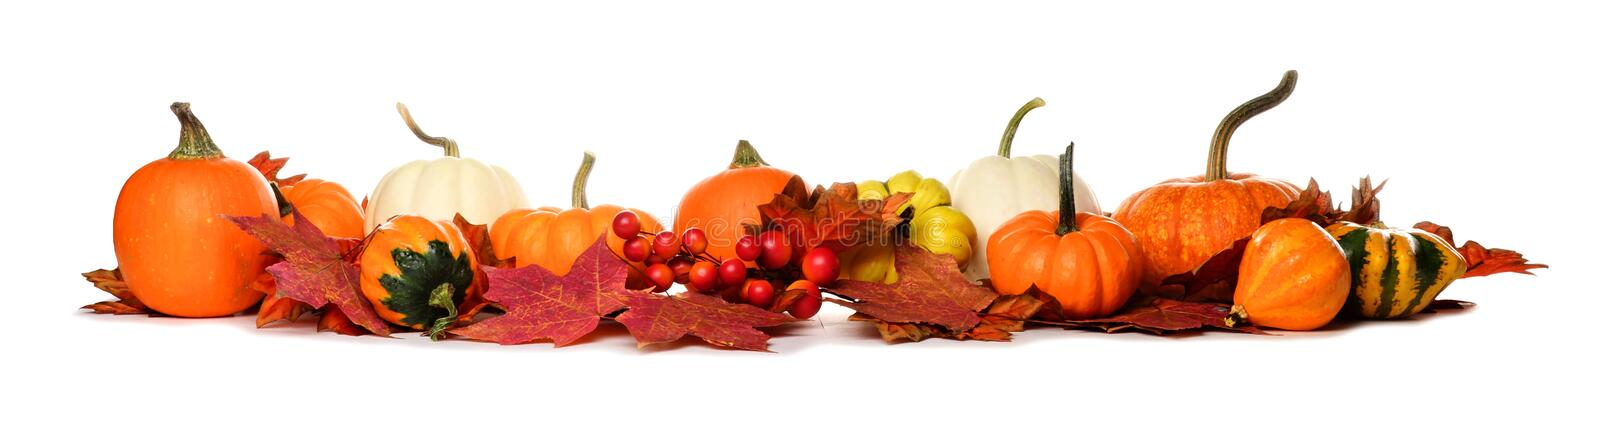 Long border of pumpkins, gourds and fall leaves on white stock photography